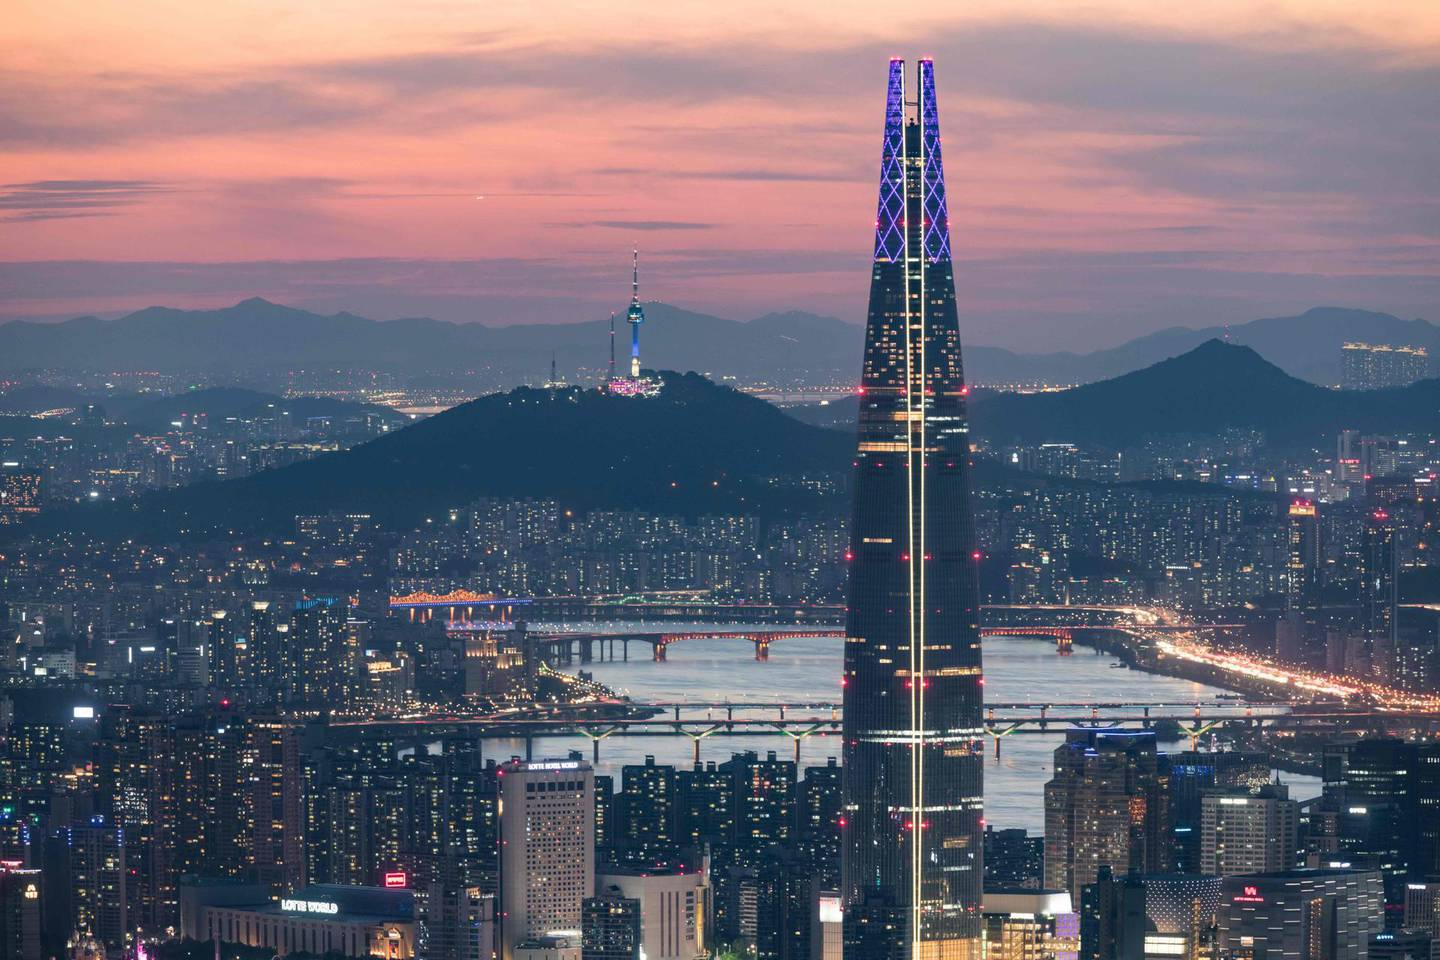 """(FILES) A file photo taken on May 19, 2018 shows a general view of the Lotte tower (front C) and Namsan tower (rear C) amid the Seoul city skyline and Han river during sunset.  French """"Spiderman"""" Alain Robert, who holds a world record for urban climbing, surrendered June 6, 2018 to a """"cat and mouse"""" chase with security as he scaled a 123-story skyscraper in Seoul to celebrate the recent peace-making efforts between the two Koreas.  -   / AFP / Ed JONES"""